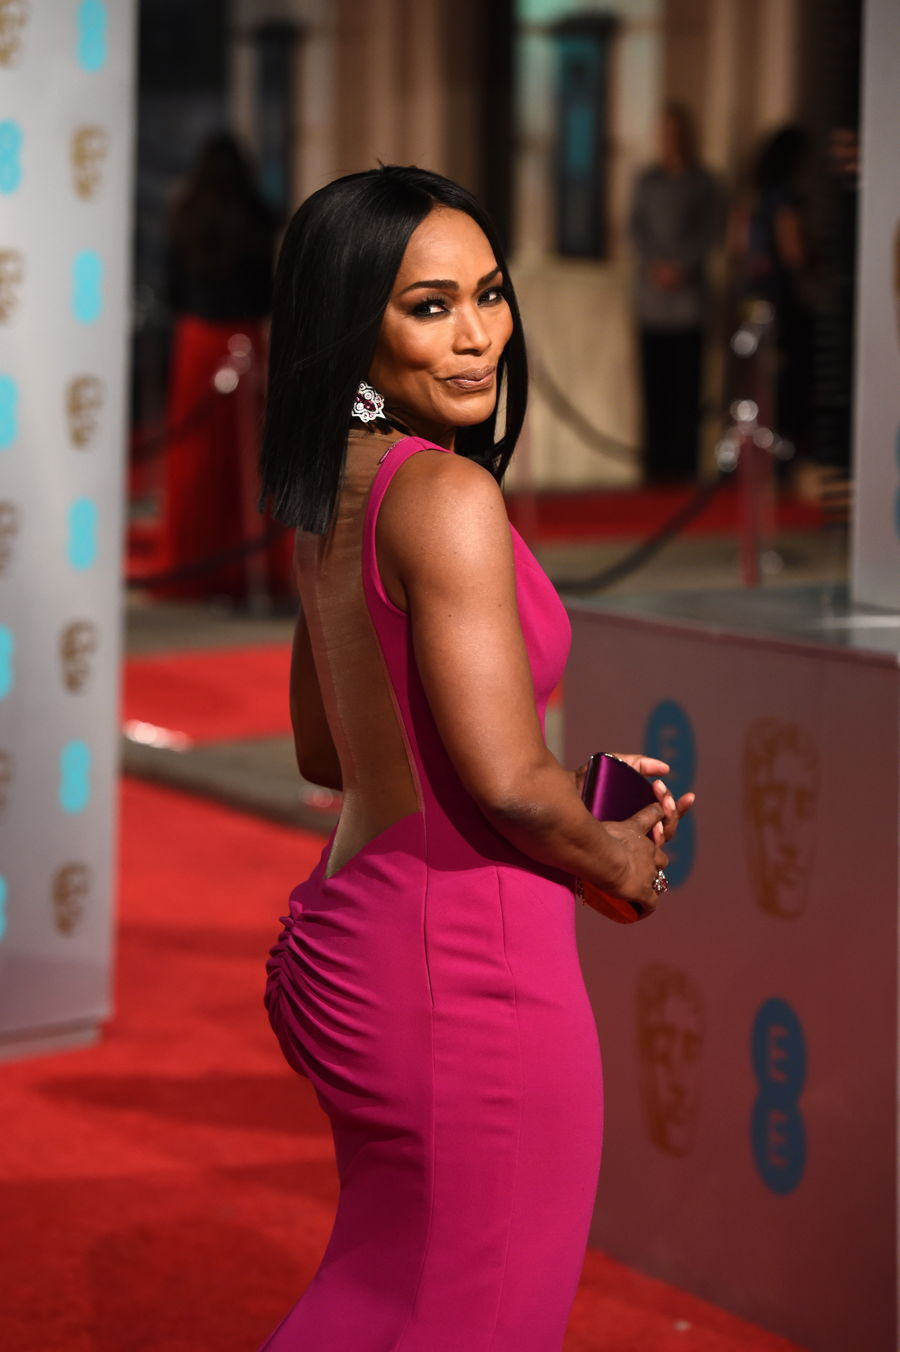 Angela Bassett Gives An Empowering Speech As She Accepts The Icon Award | Black Girls Rock 2019